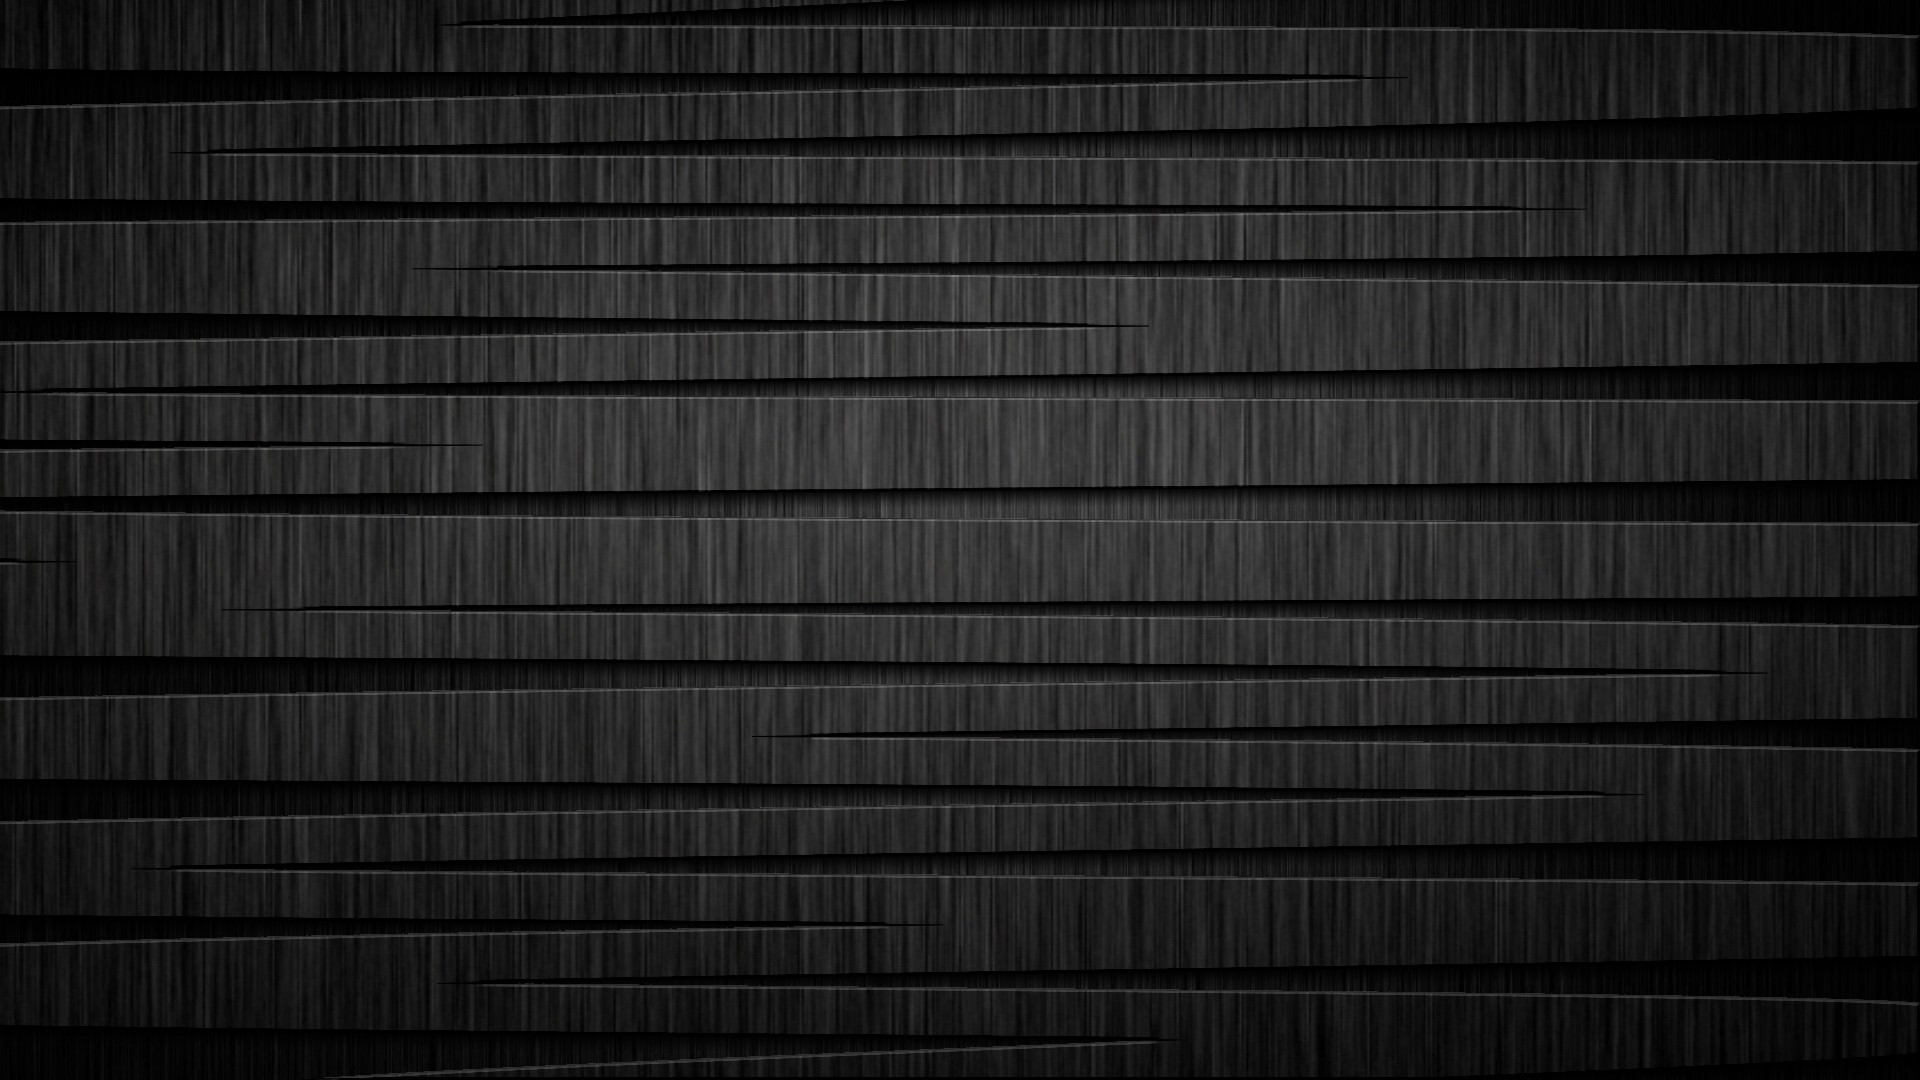 Res: 1920x1080, Black Abstract Wallpapers High Resolution with High Definition Wallpaper  Resolution  px 285.96 KB